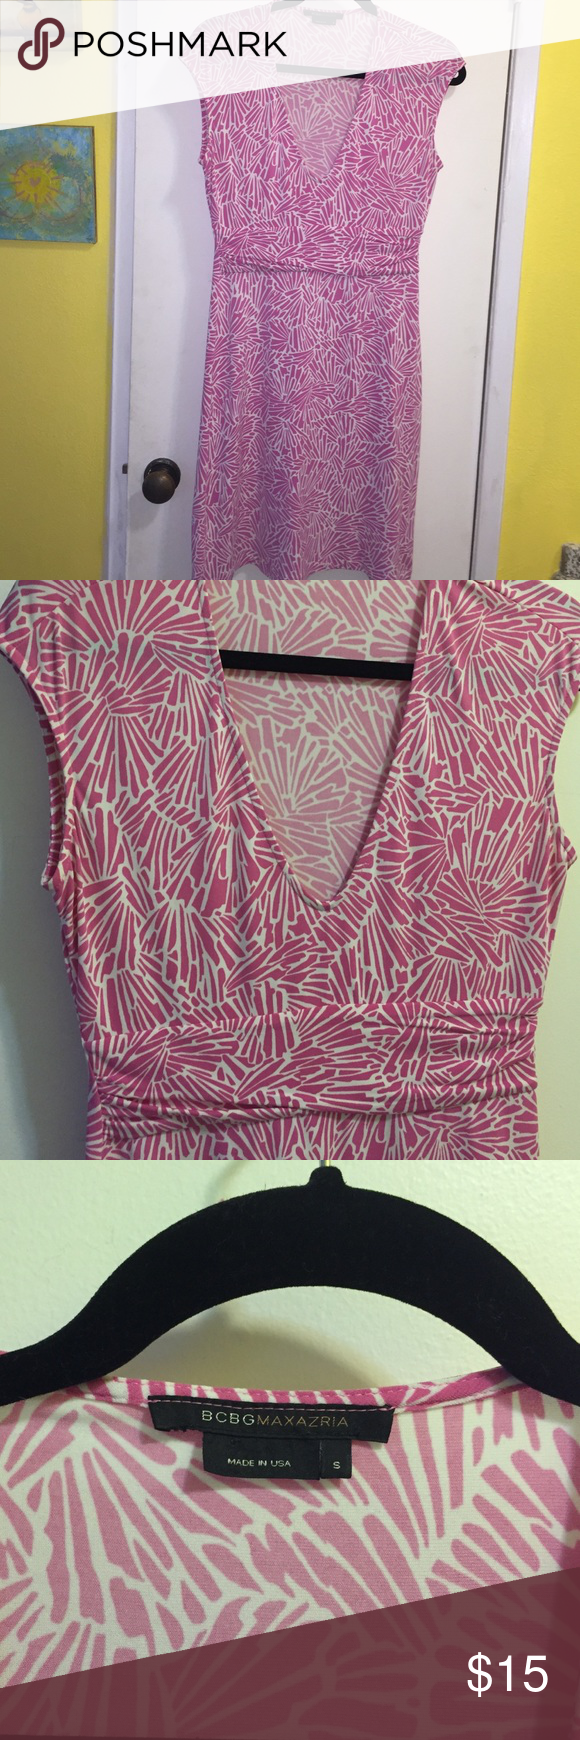 BCBGMaxAzria pink and white print dress, small BCBGMaxAzria pink and white print dress with small cap sleeves, v neck, 4 inch slit on the left side, good condition, stretch fabric, size small BCBGMaxAzria Dresses Midi